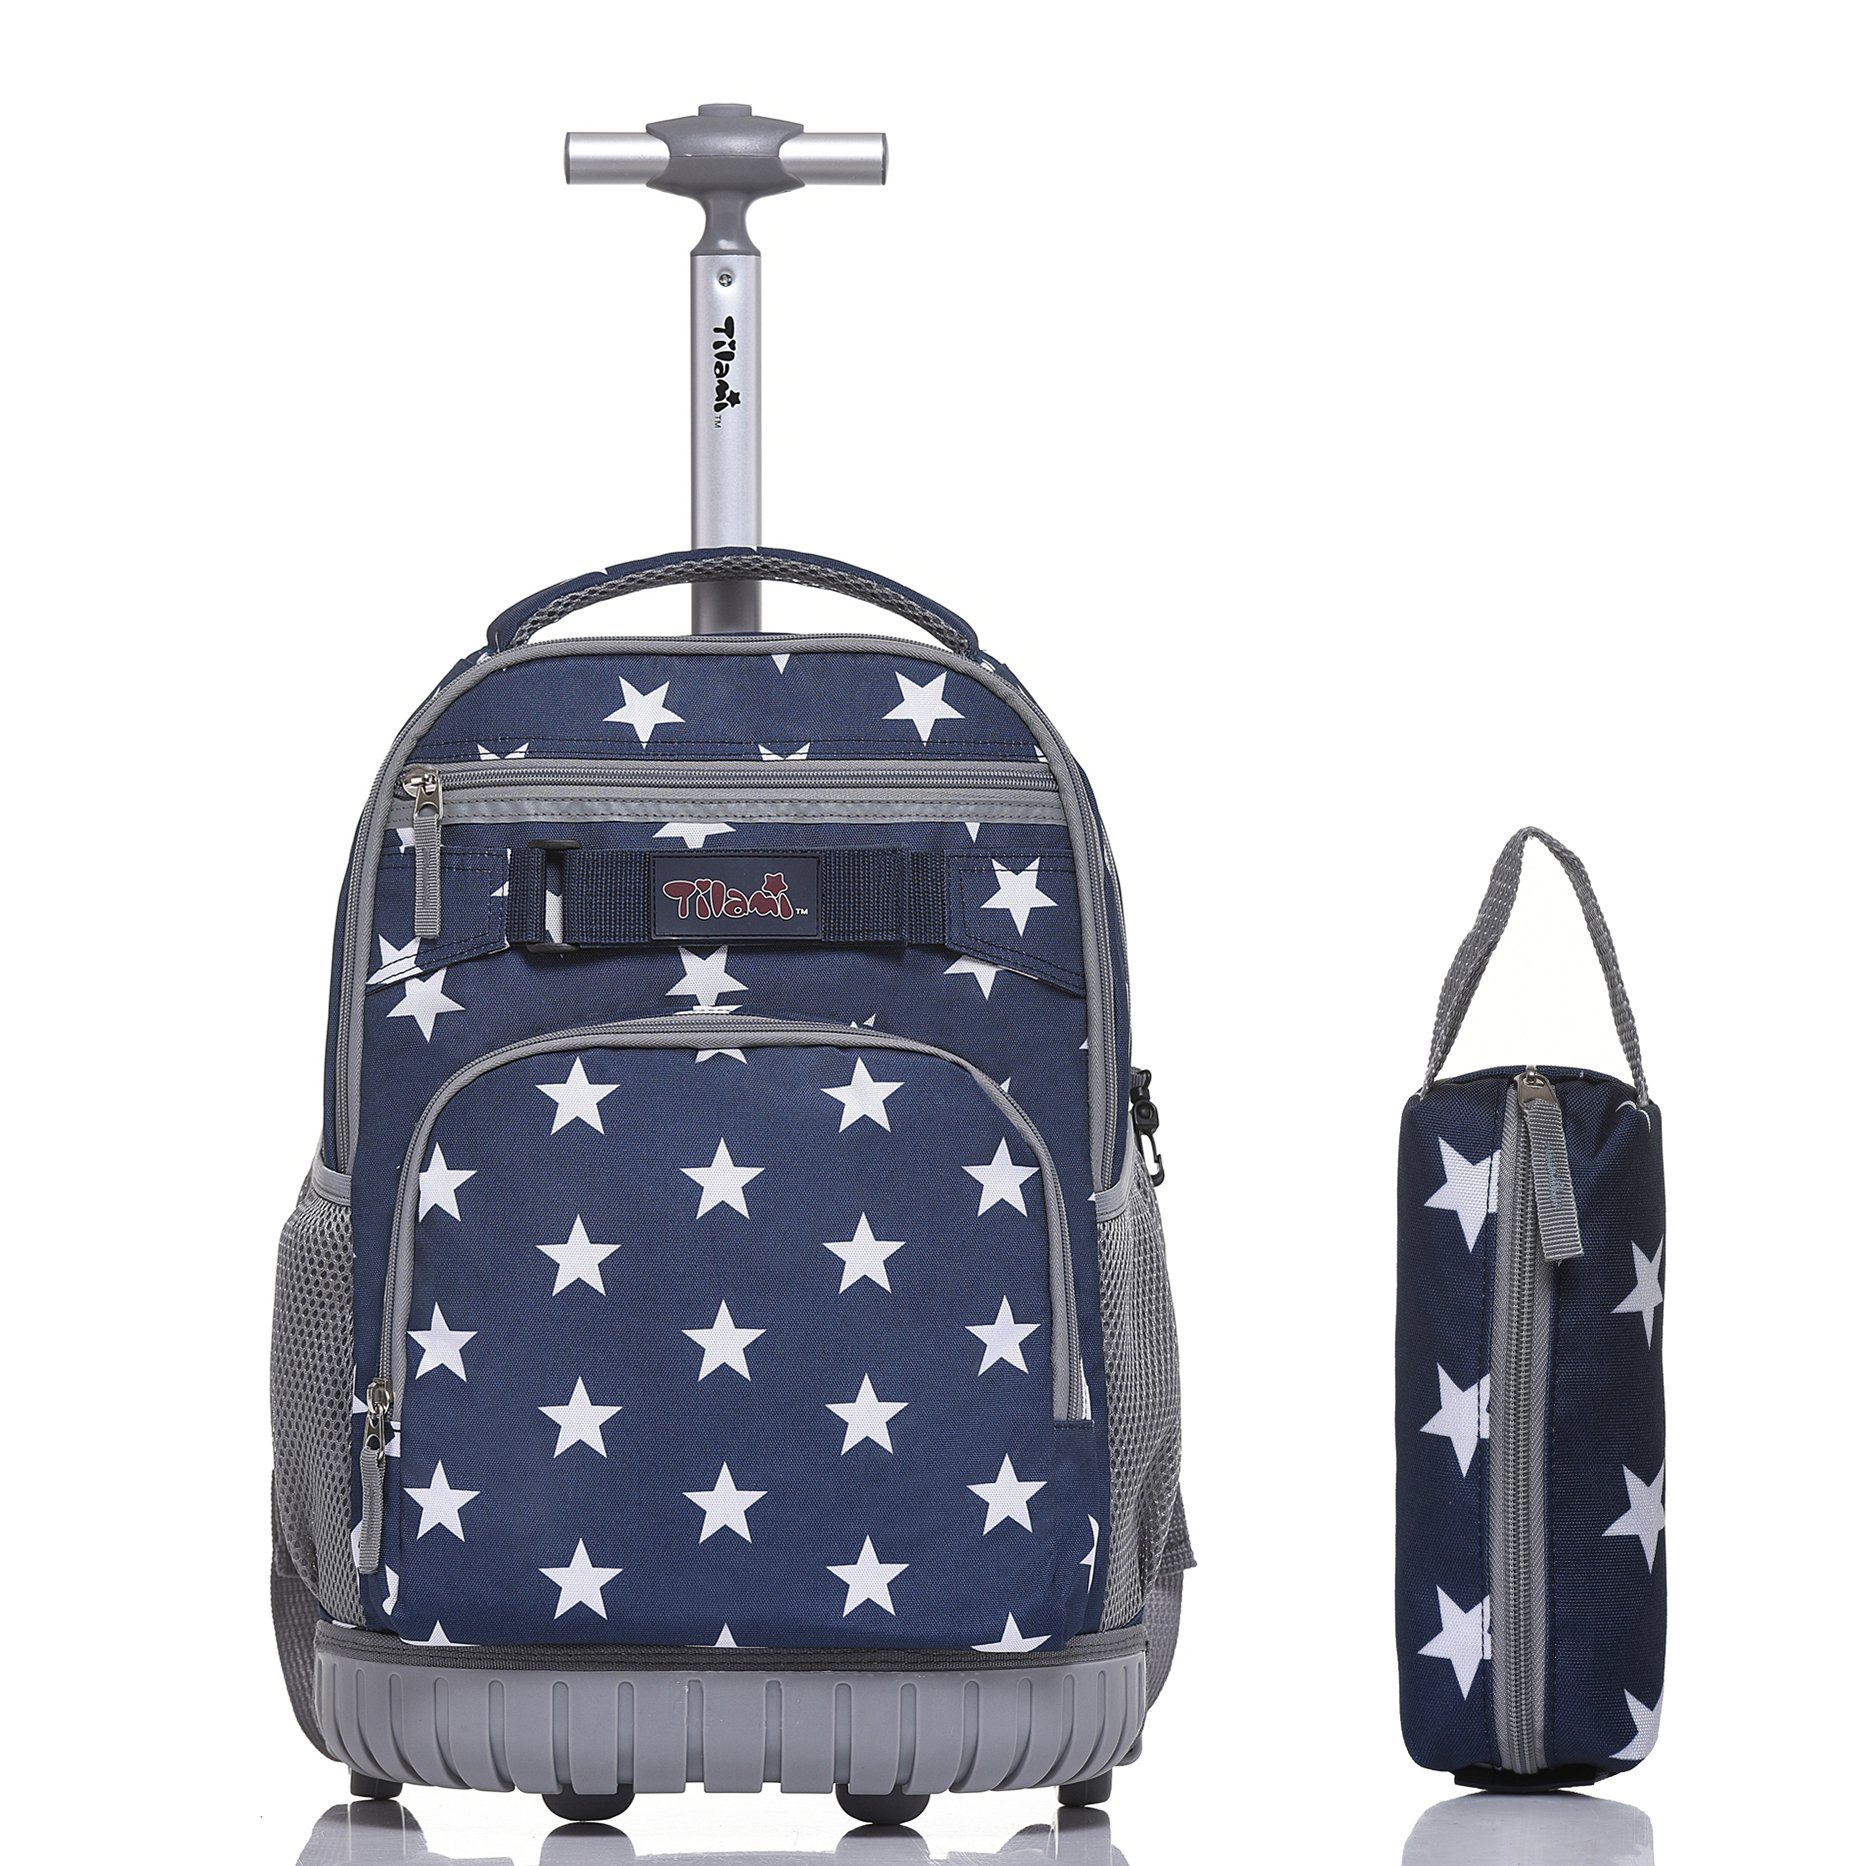 Tilami Rolling Backpack 18 Inch for School Travel with Pencil Case, Blue Star